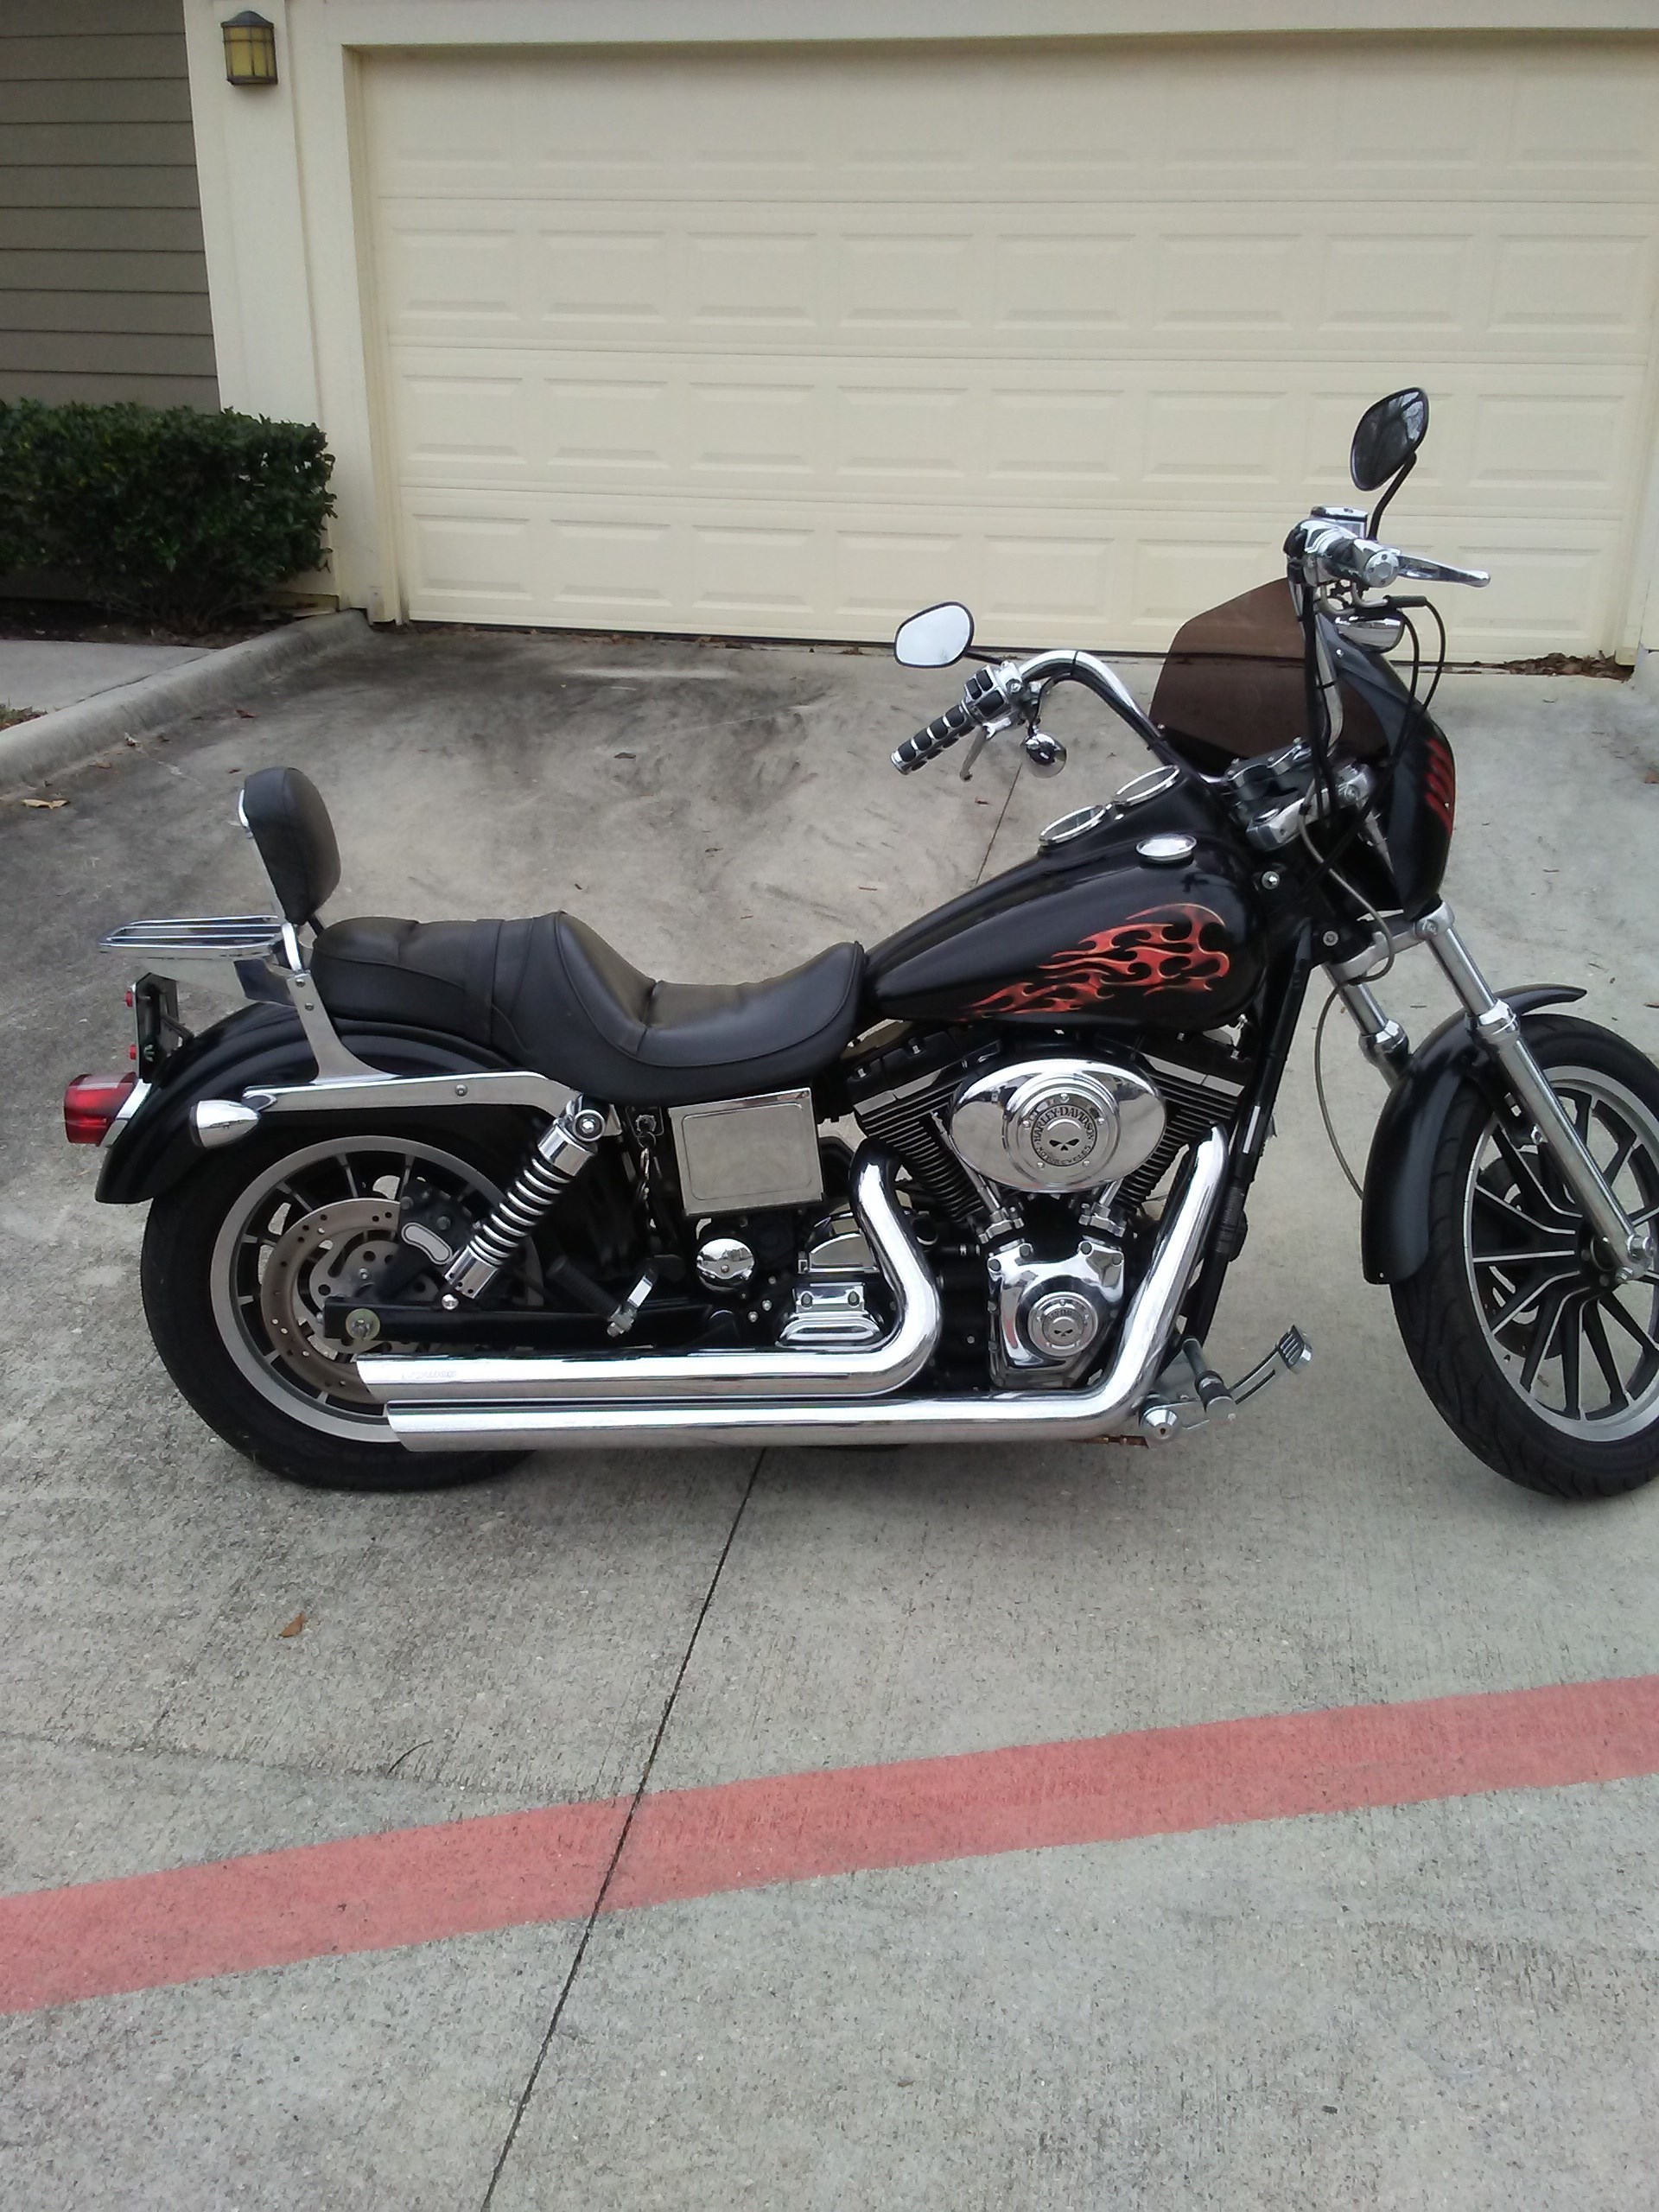 Harley Davidson Dyna Fxdl Low Rider For Sale In London ...